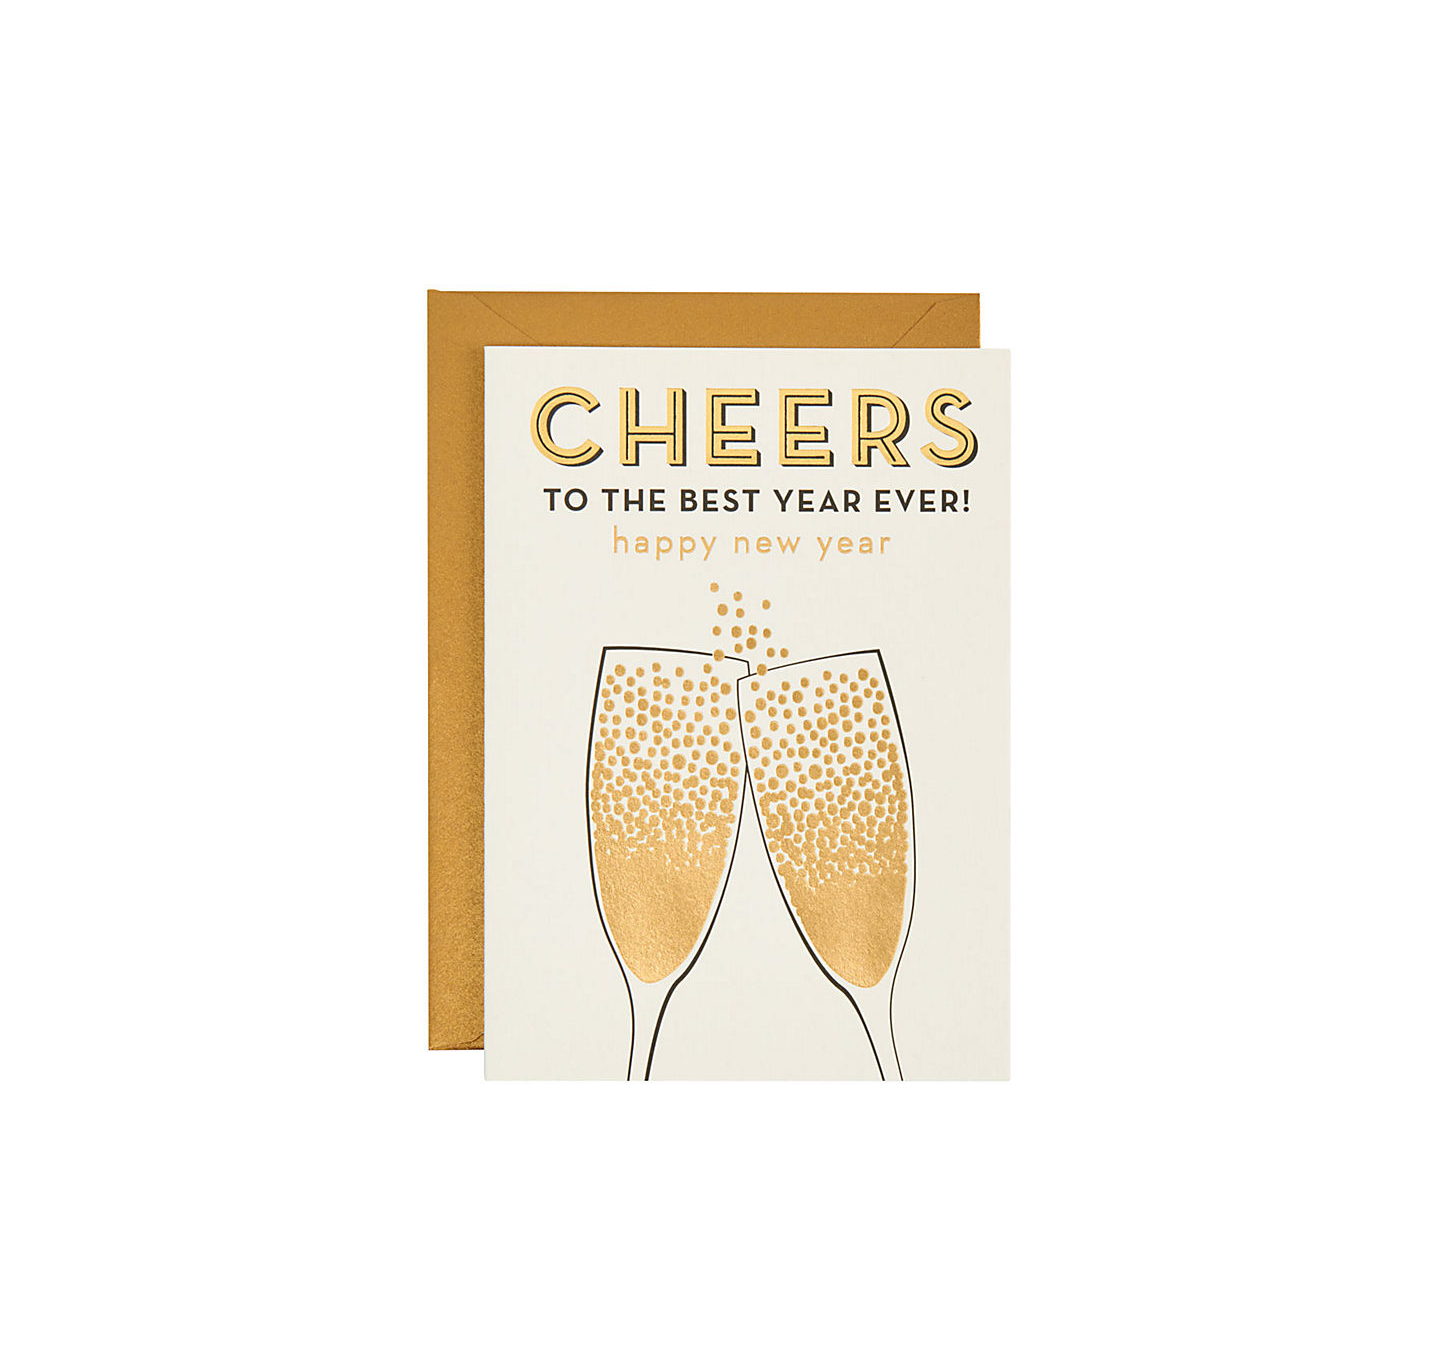 16 New Year\'s Cards to Send to Friends and Family | Real Simple